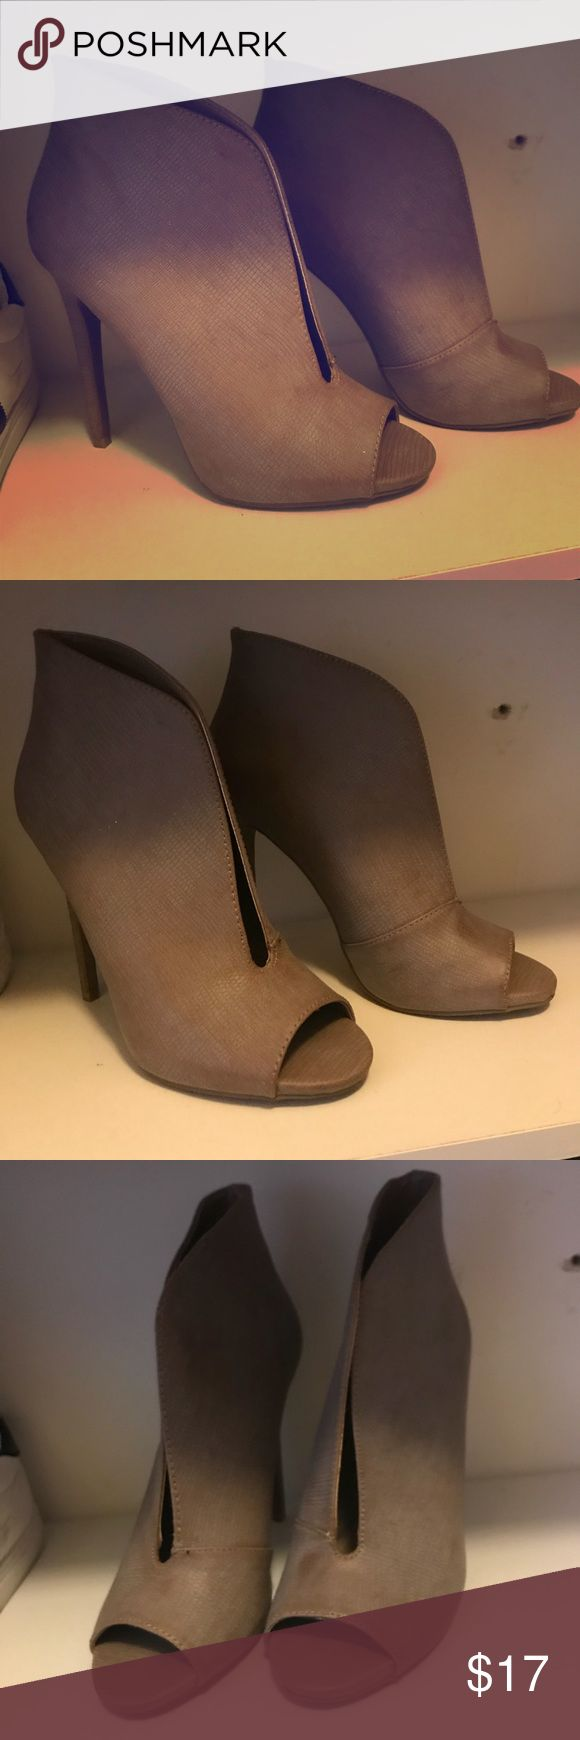 Sand Cut Out Booties JustFab 👢 Preloved JustFab Sand Color Booties for sale! These are to die for & designer inspired. Awesome fir a night out on the Town or just as a chic daily look! #bootseason #todiefor JustFab Shoes Ankle Boots & Booties